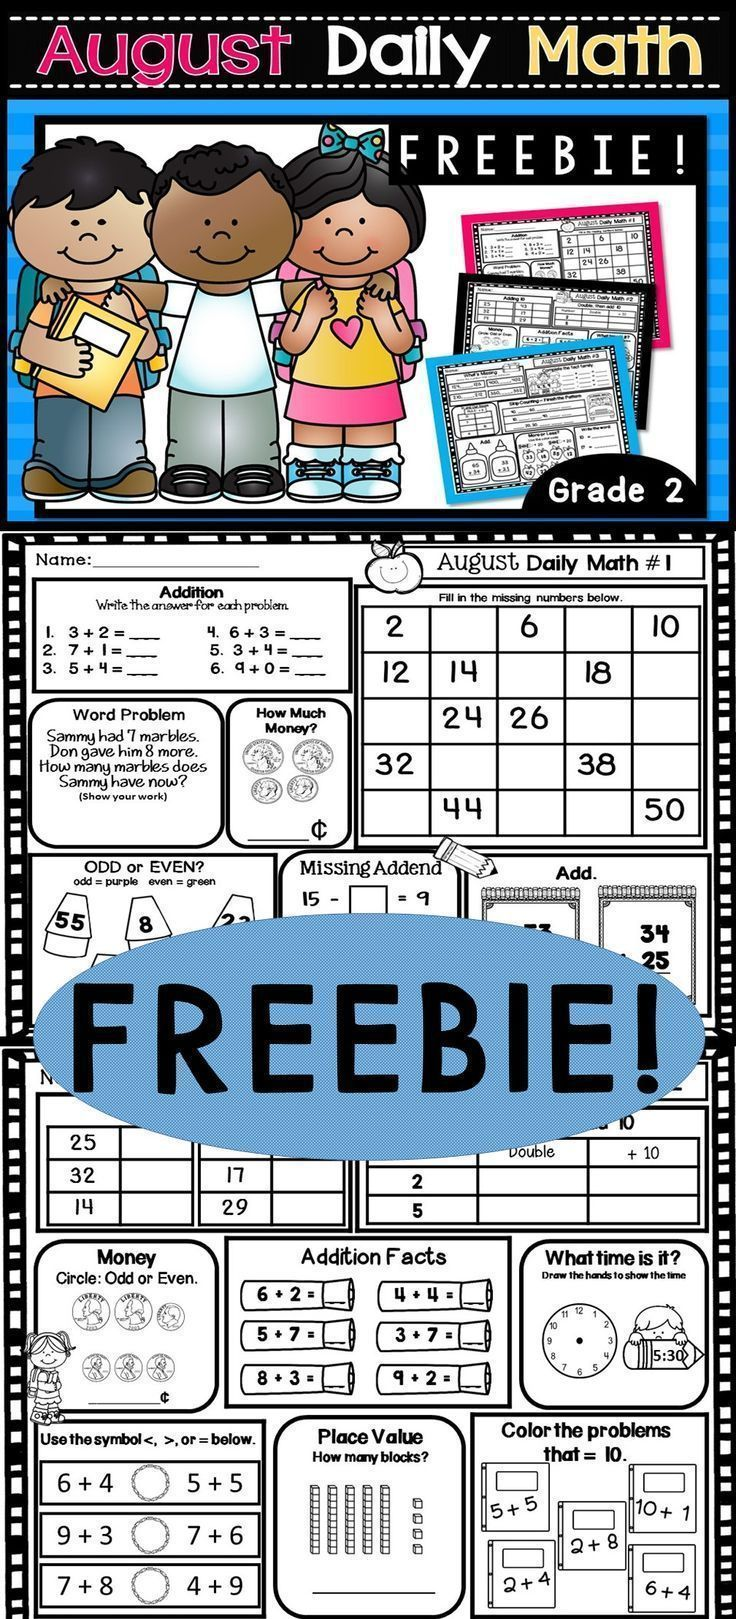 August Daily Math FREEBIE! Daily worksheets for beginning 2nd grade.  Can be used for morning work, early finishers, centers, homework, or independent work.